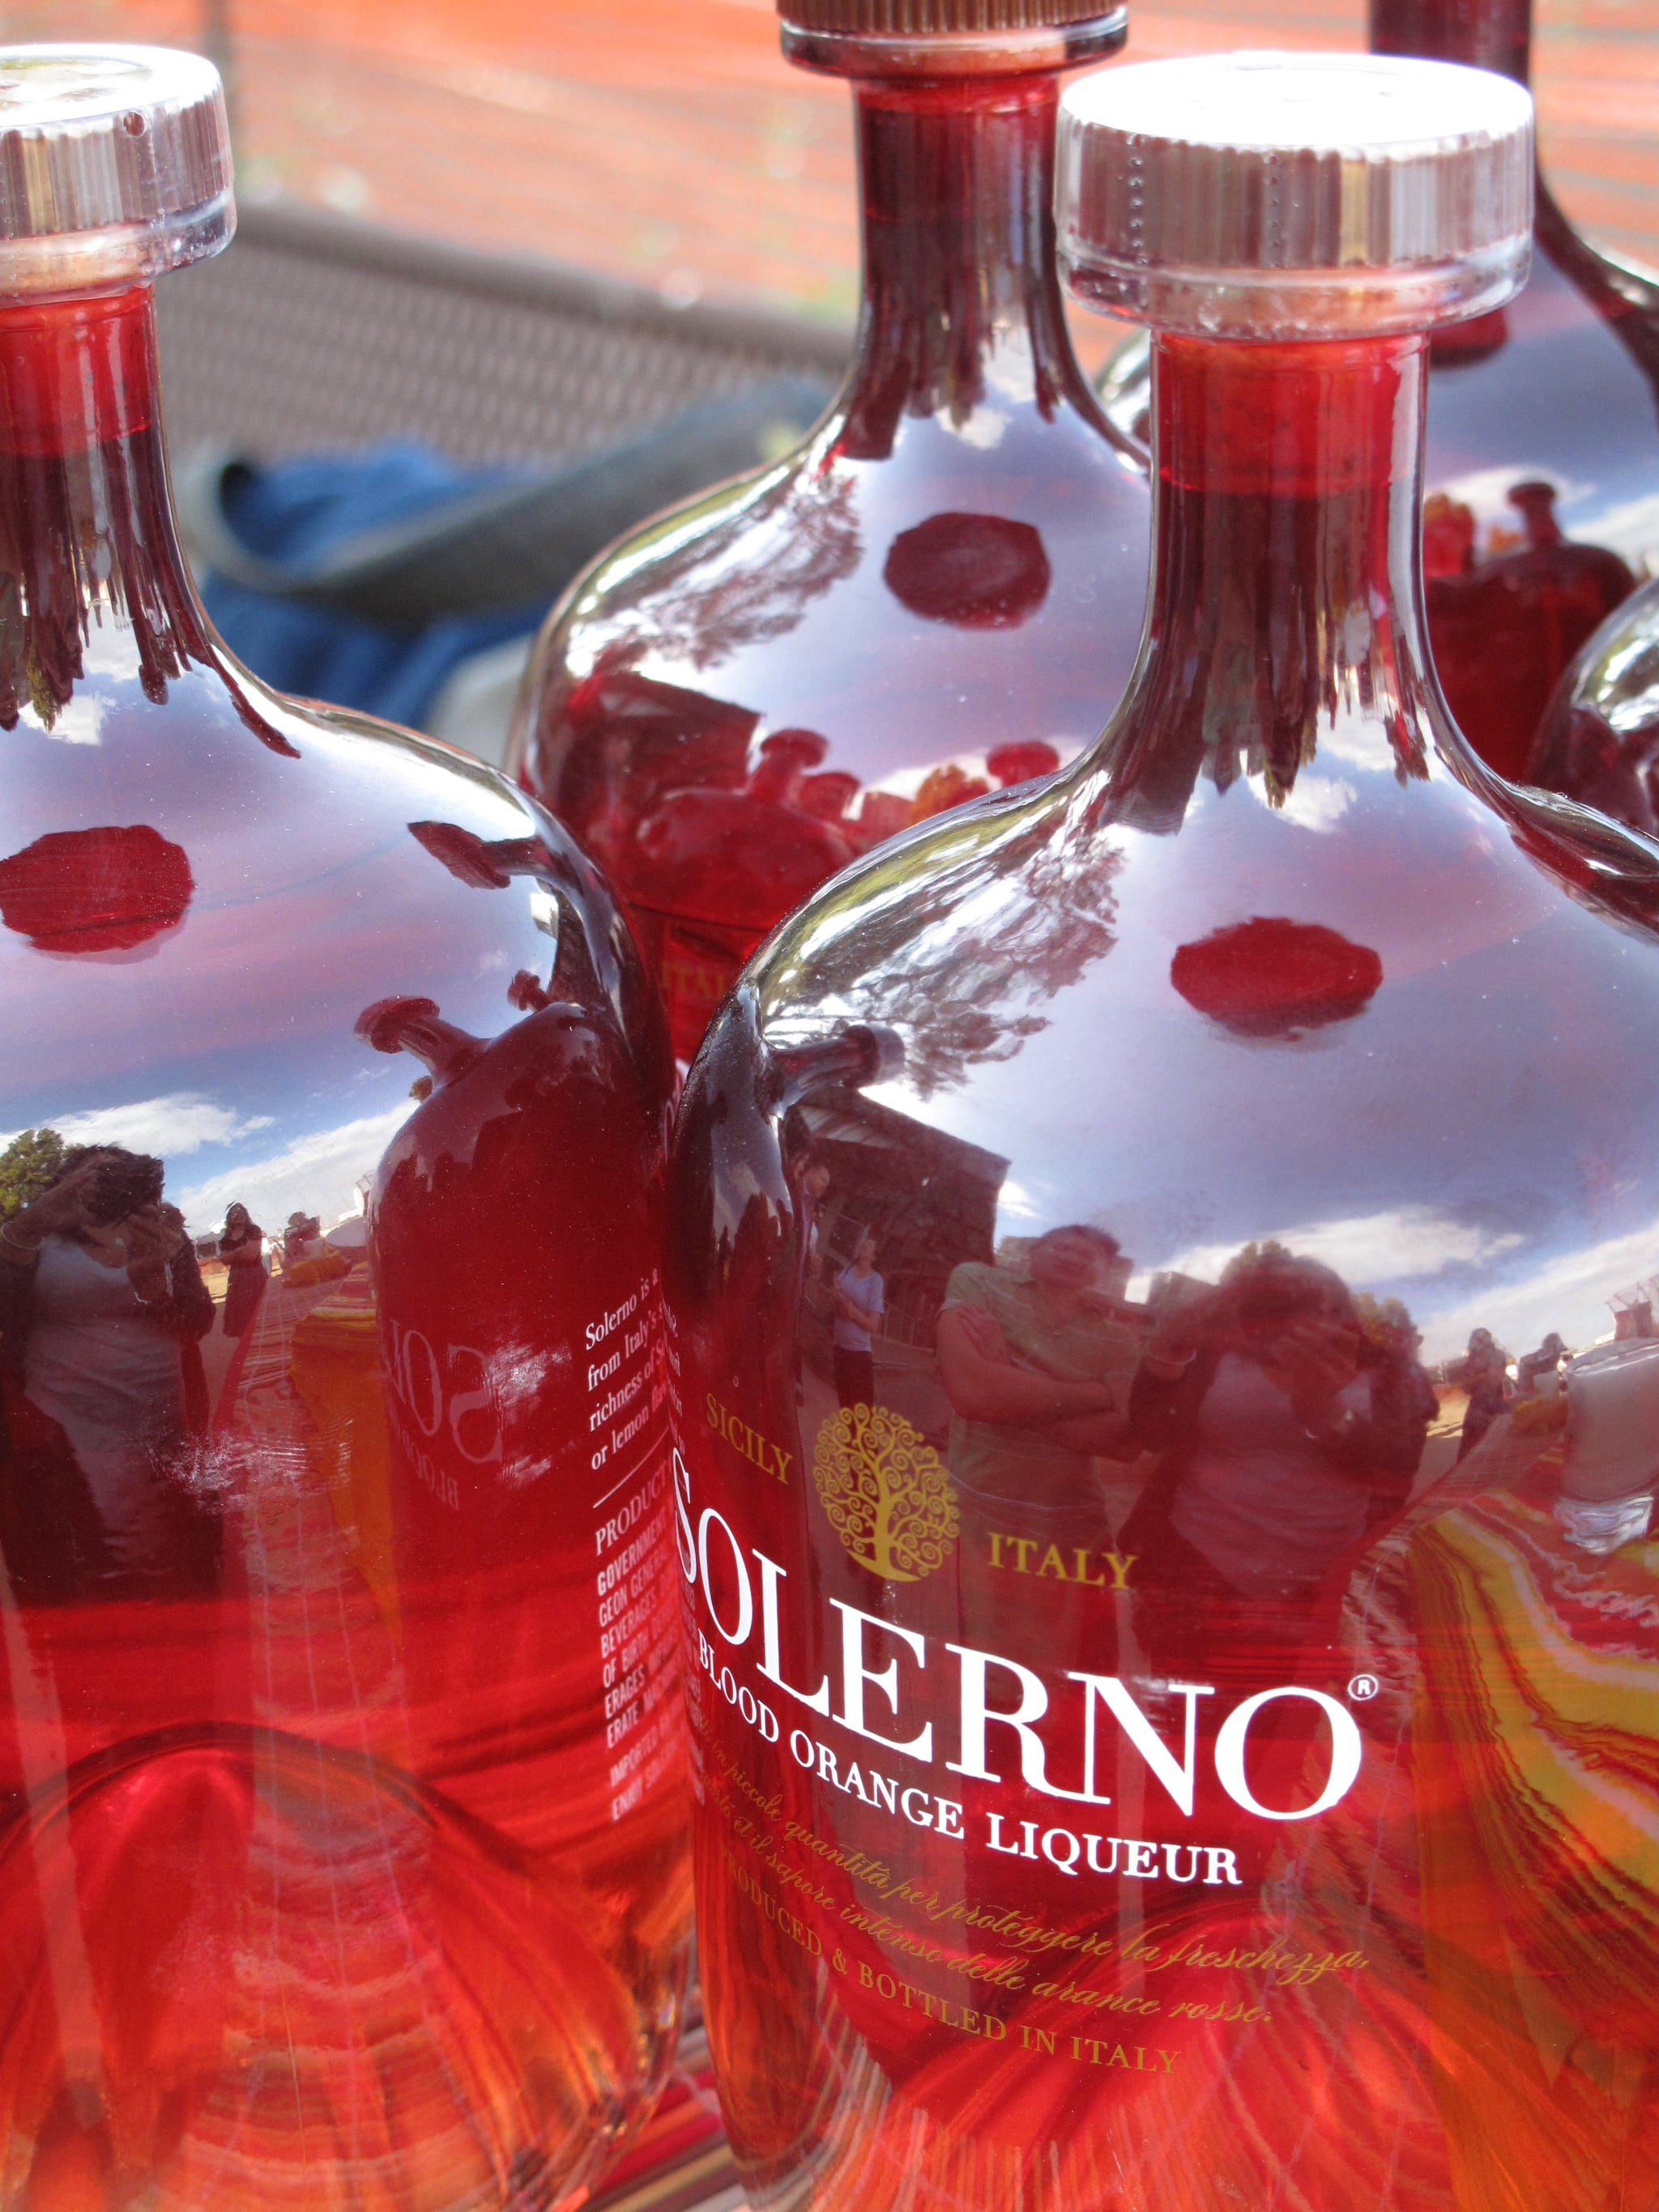 Solerno bottles are glass-blown according to traditions followed by artisans in Murano, Italy.